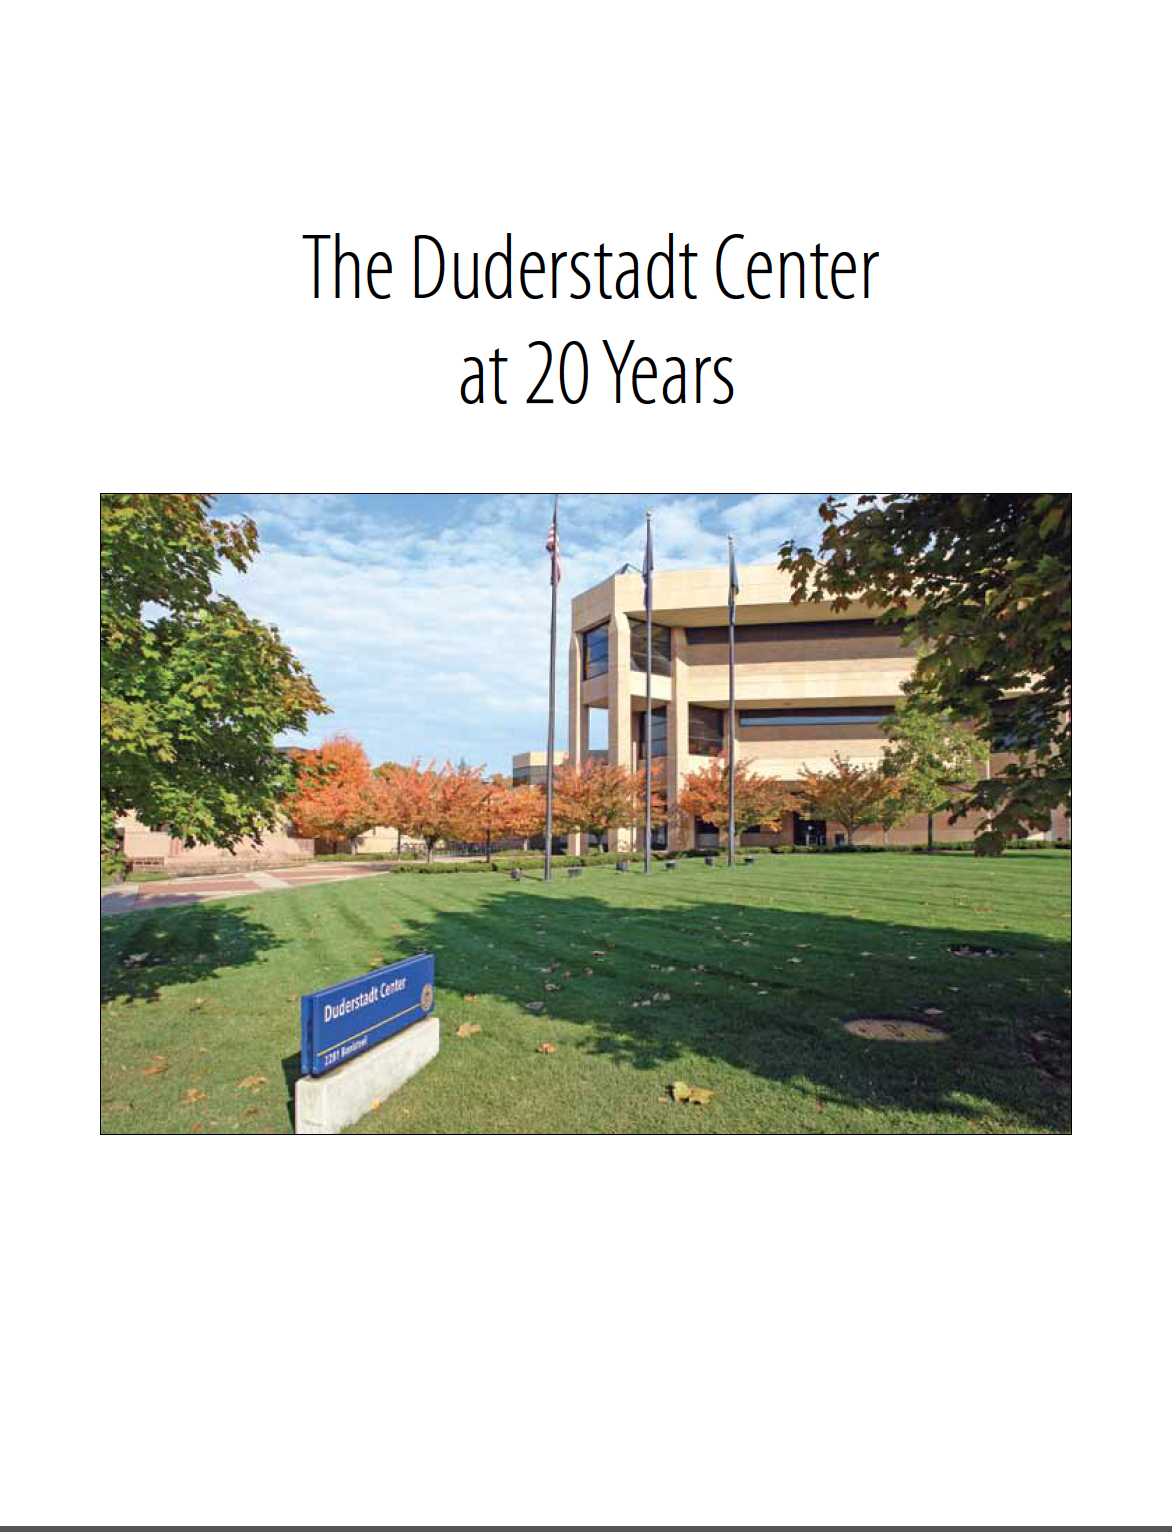 Duderstadt Center Vision